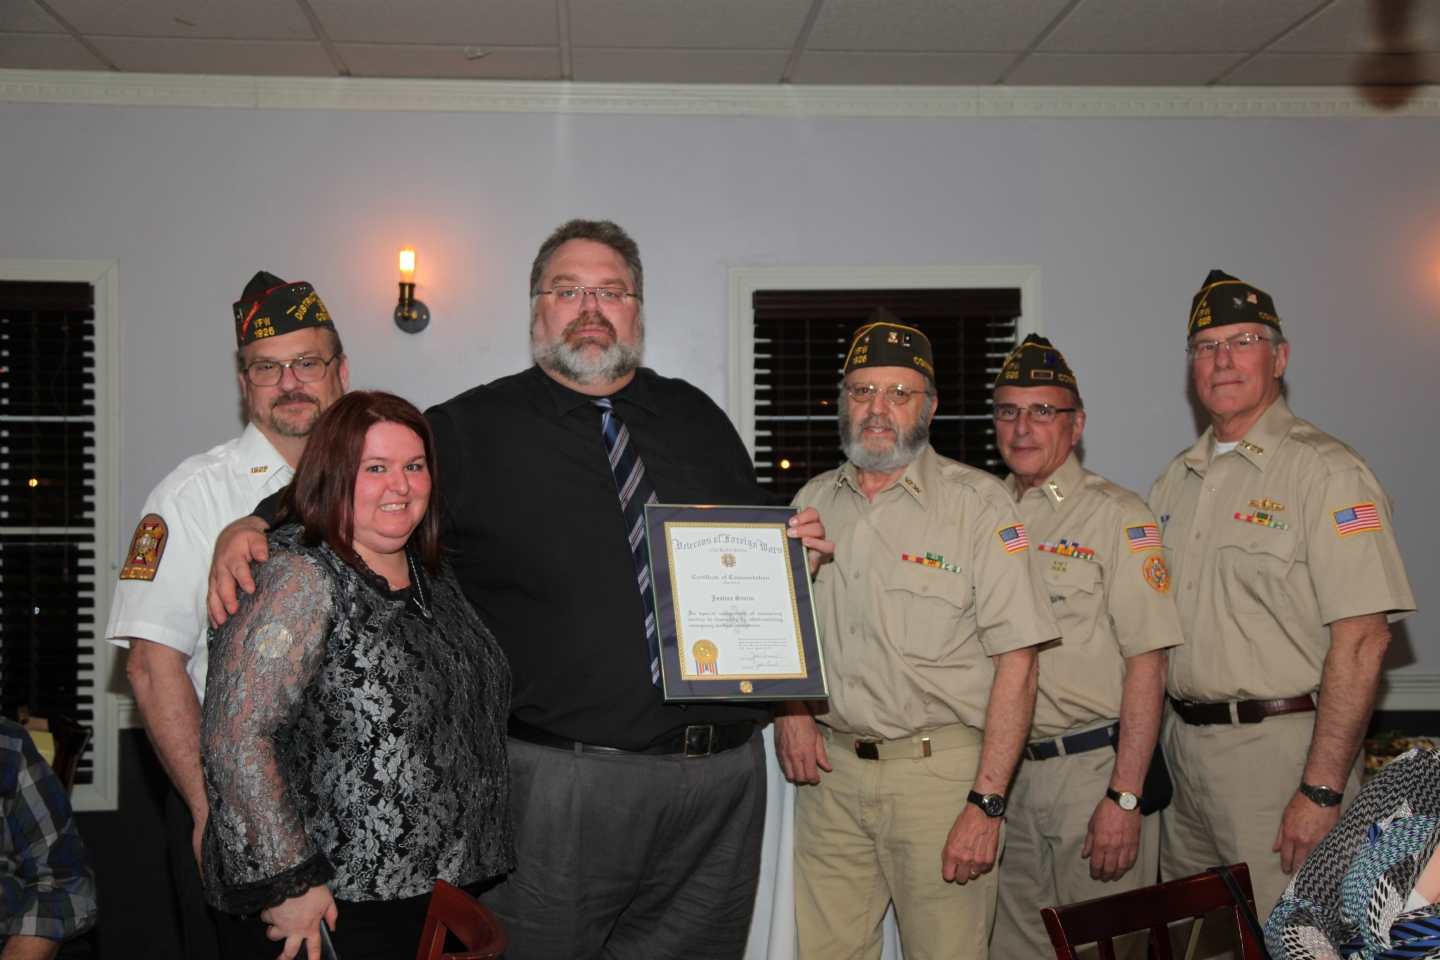 The Metacomet Post 1926, Veterans of Foreign Wars, Simsbury, CT